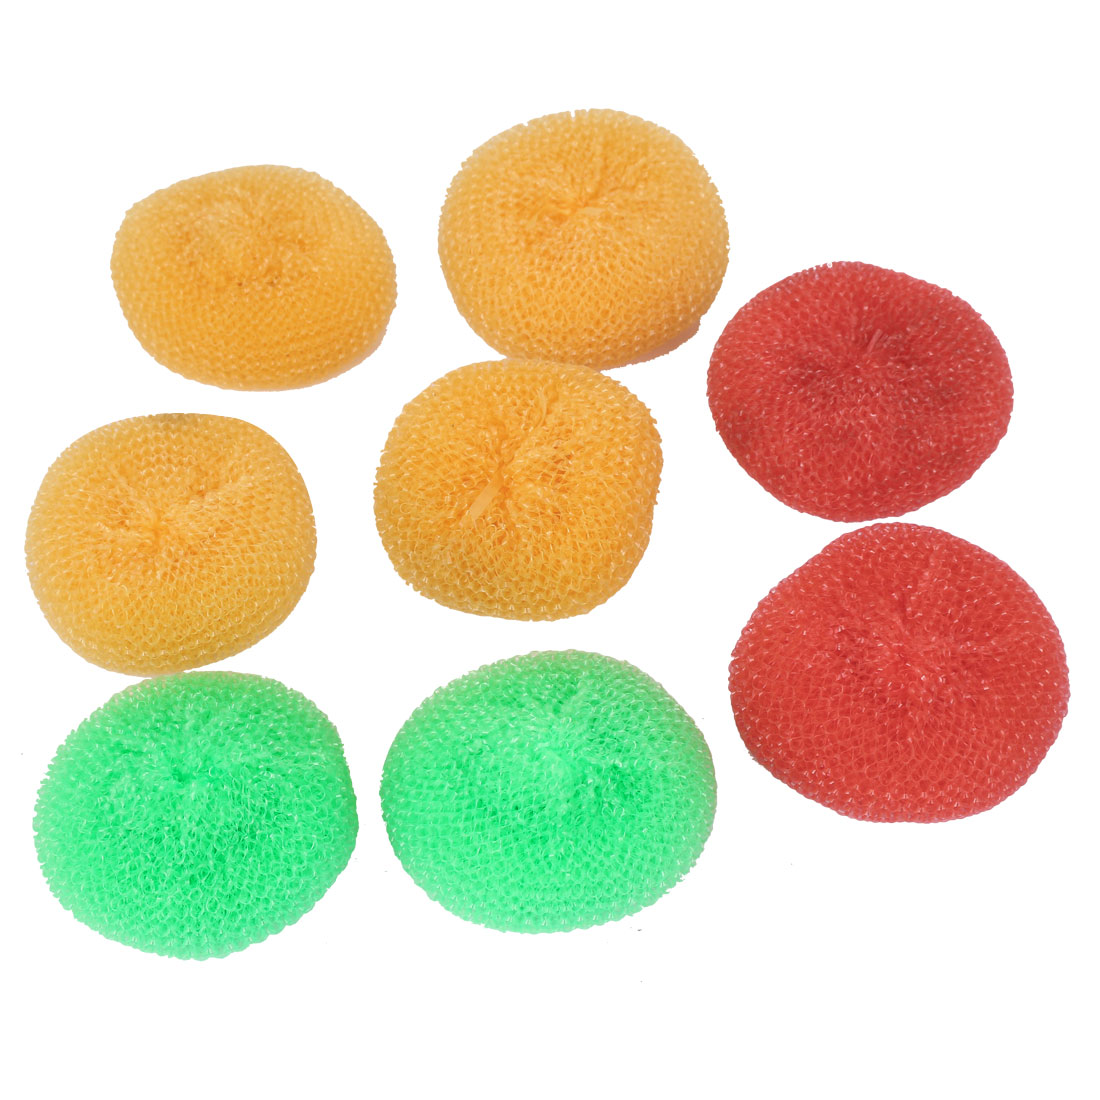 Plastic Wire Round Ball Bowl Dish Washing Scouring Scrubber 8pcs